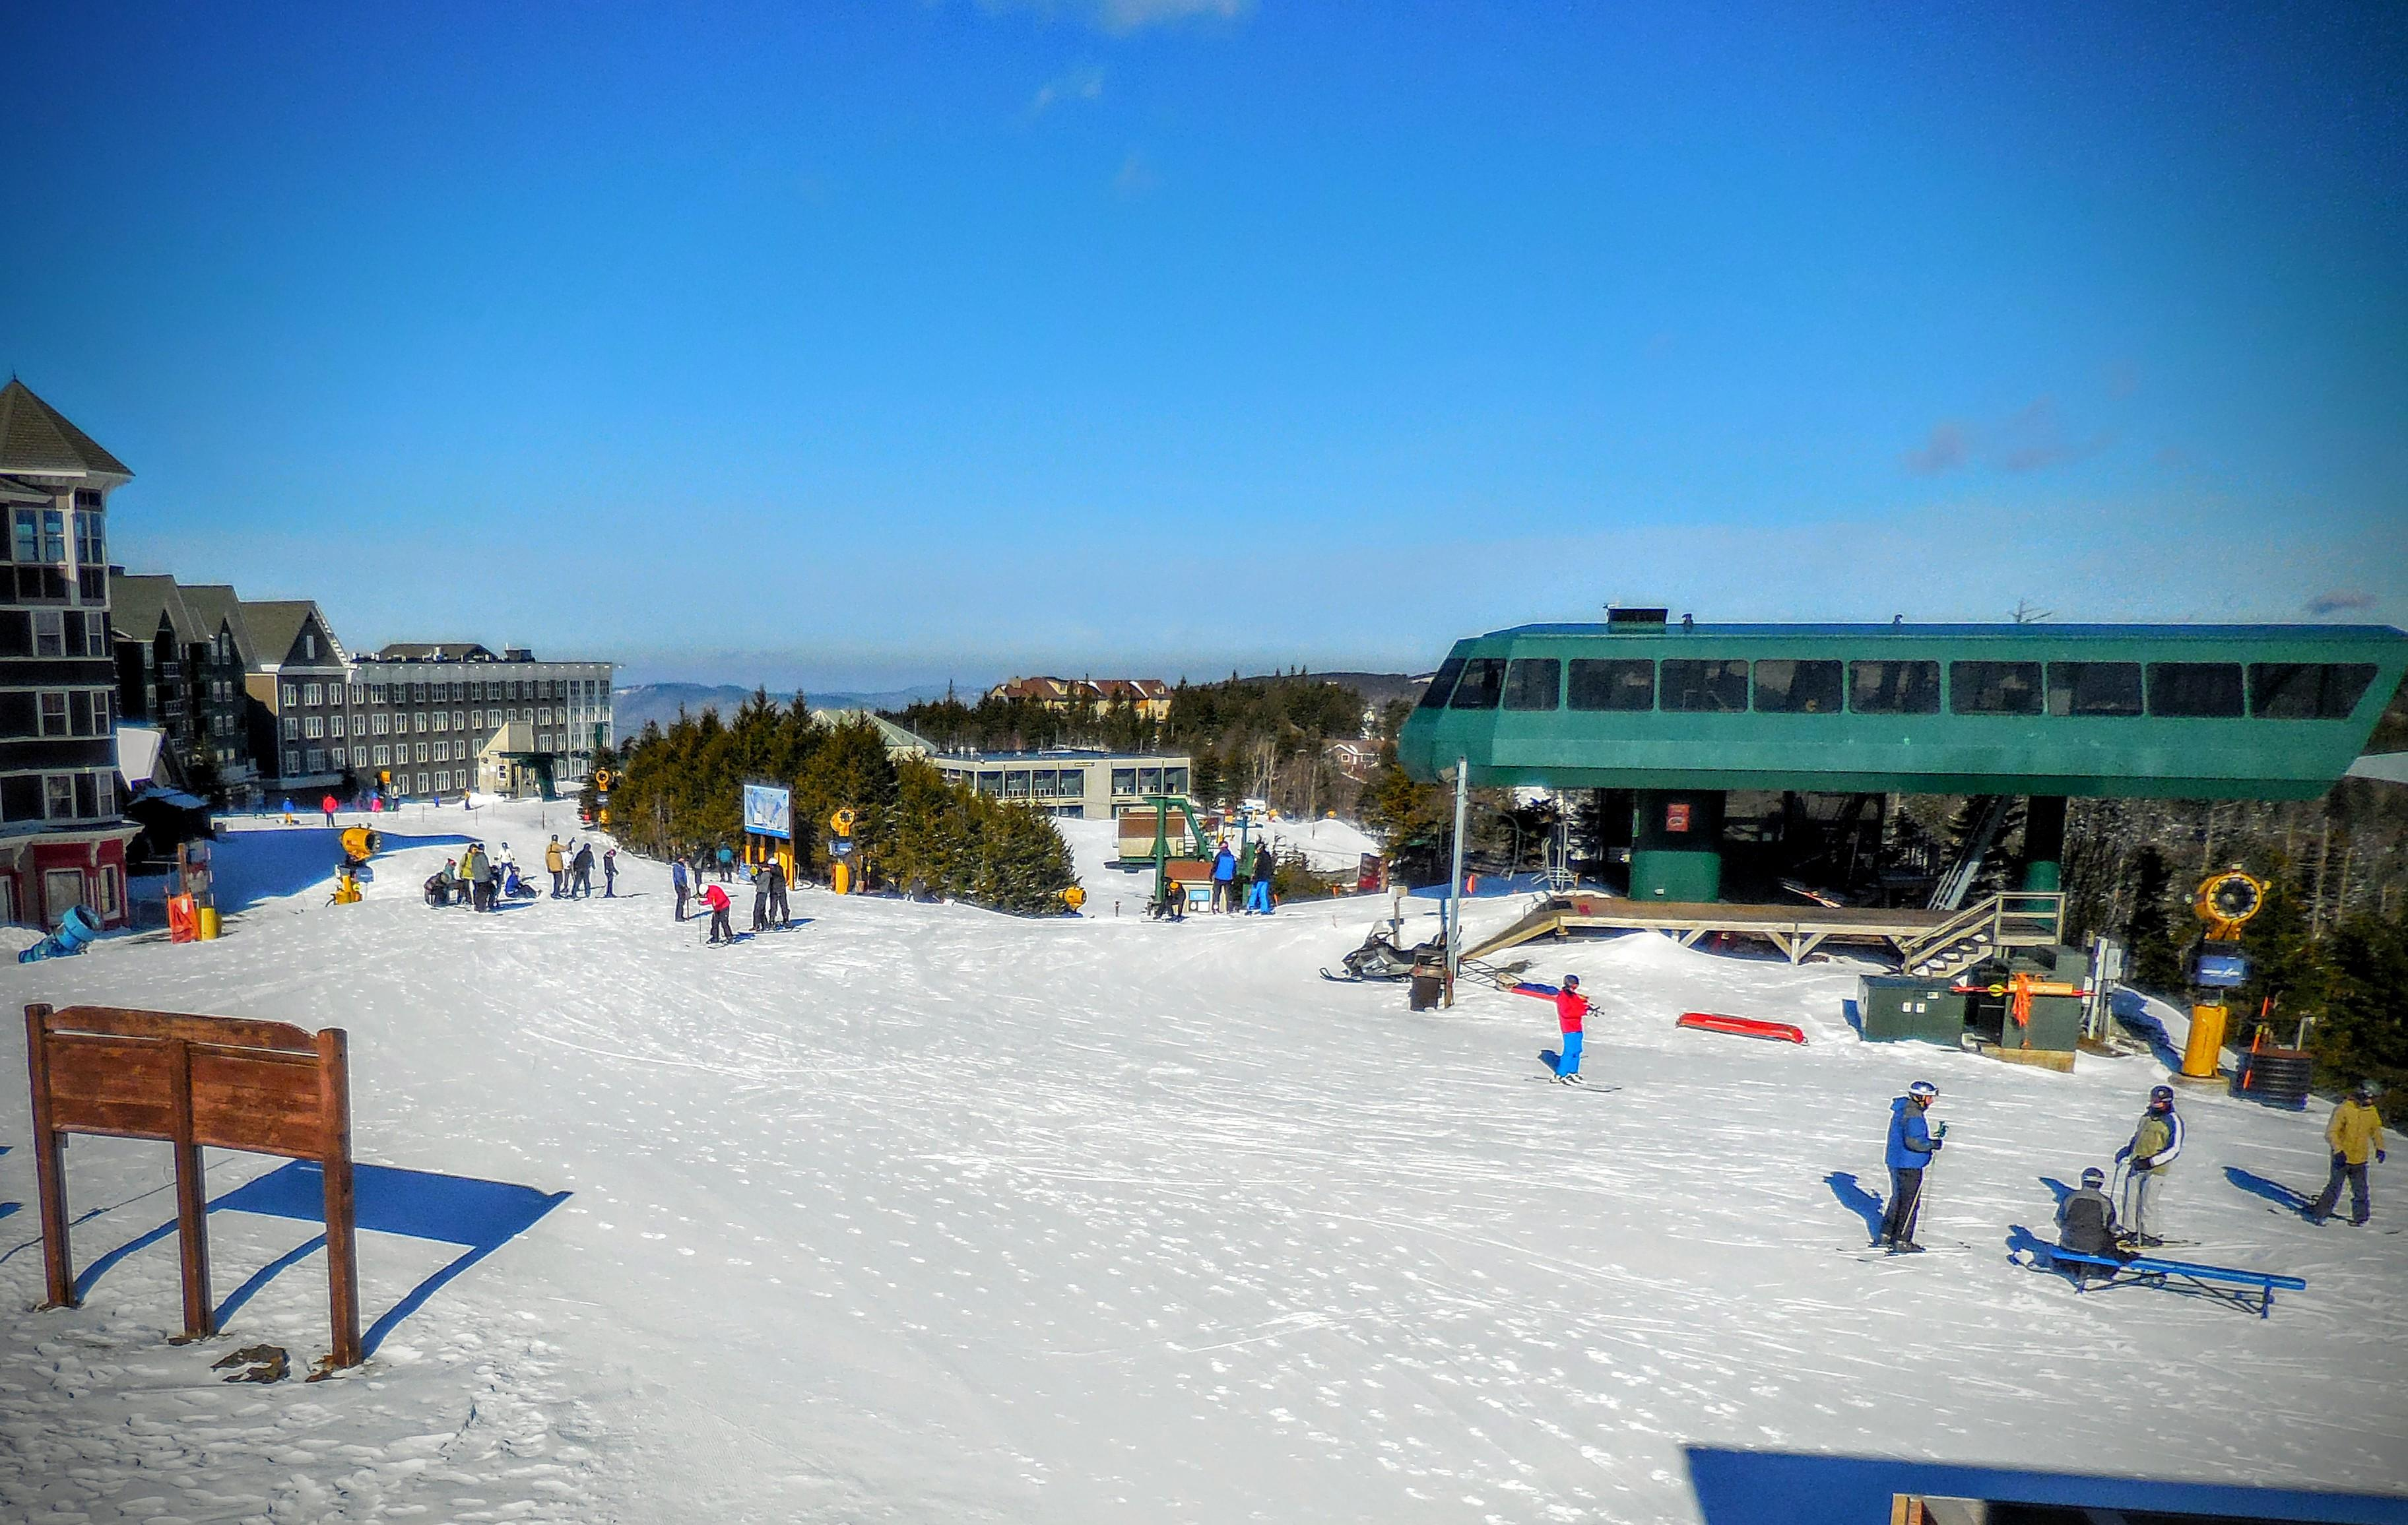 Views of Ballhooter lift and slopes from the ML332 balcony!